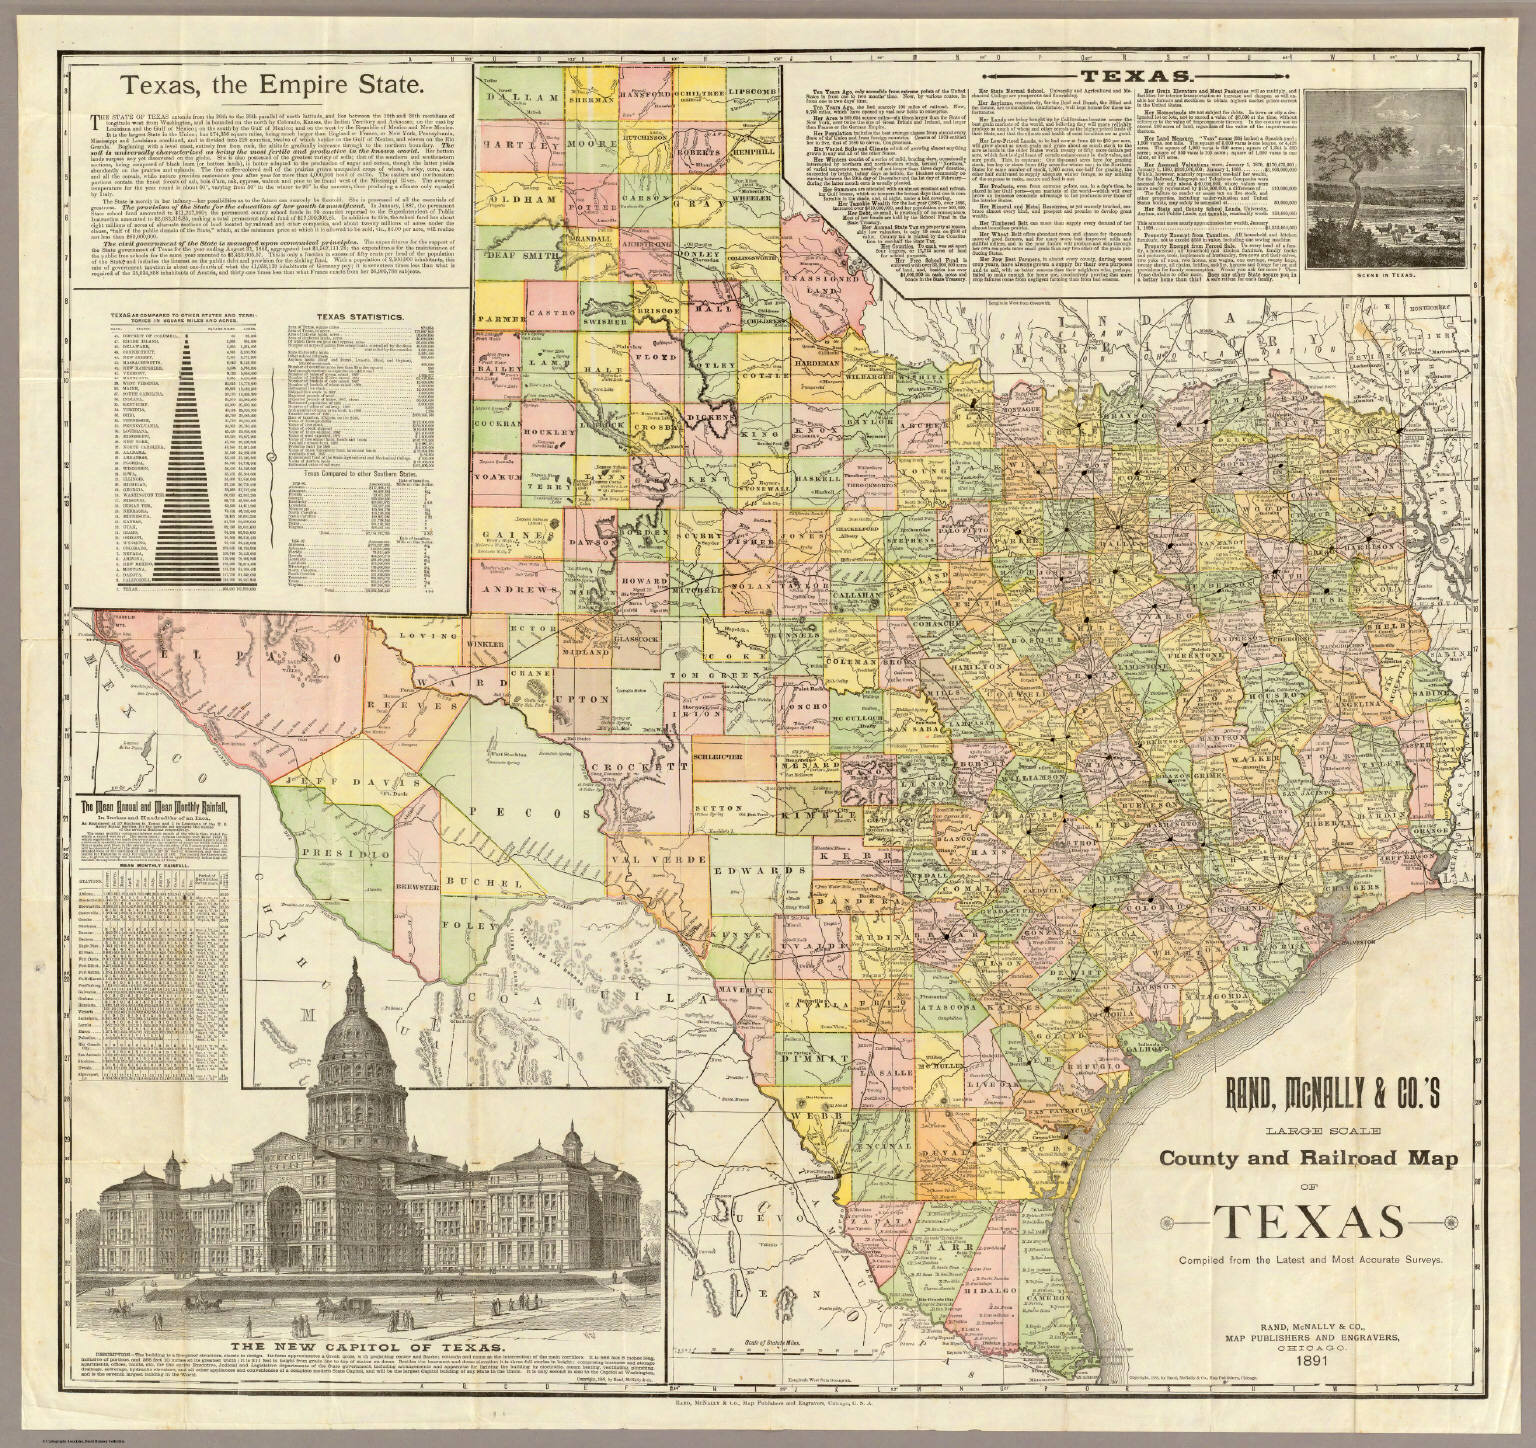 Railroad Map Of Texas.Large Scale County And Railroad Map Of Texas Rand Mcnally And